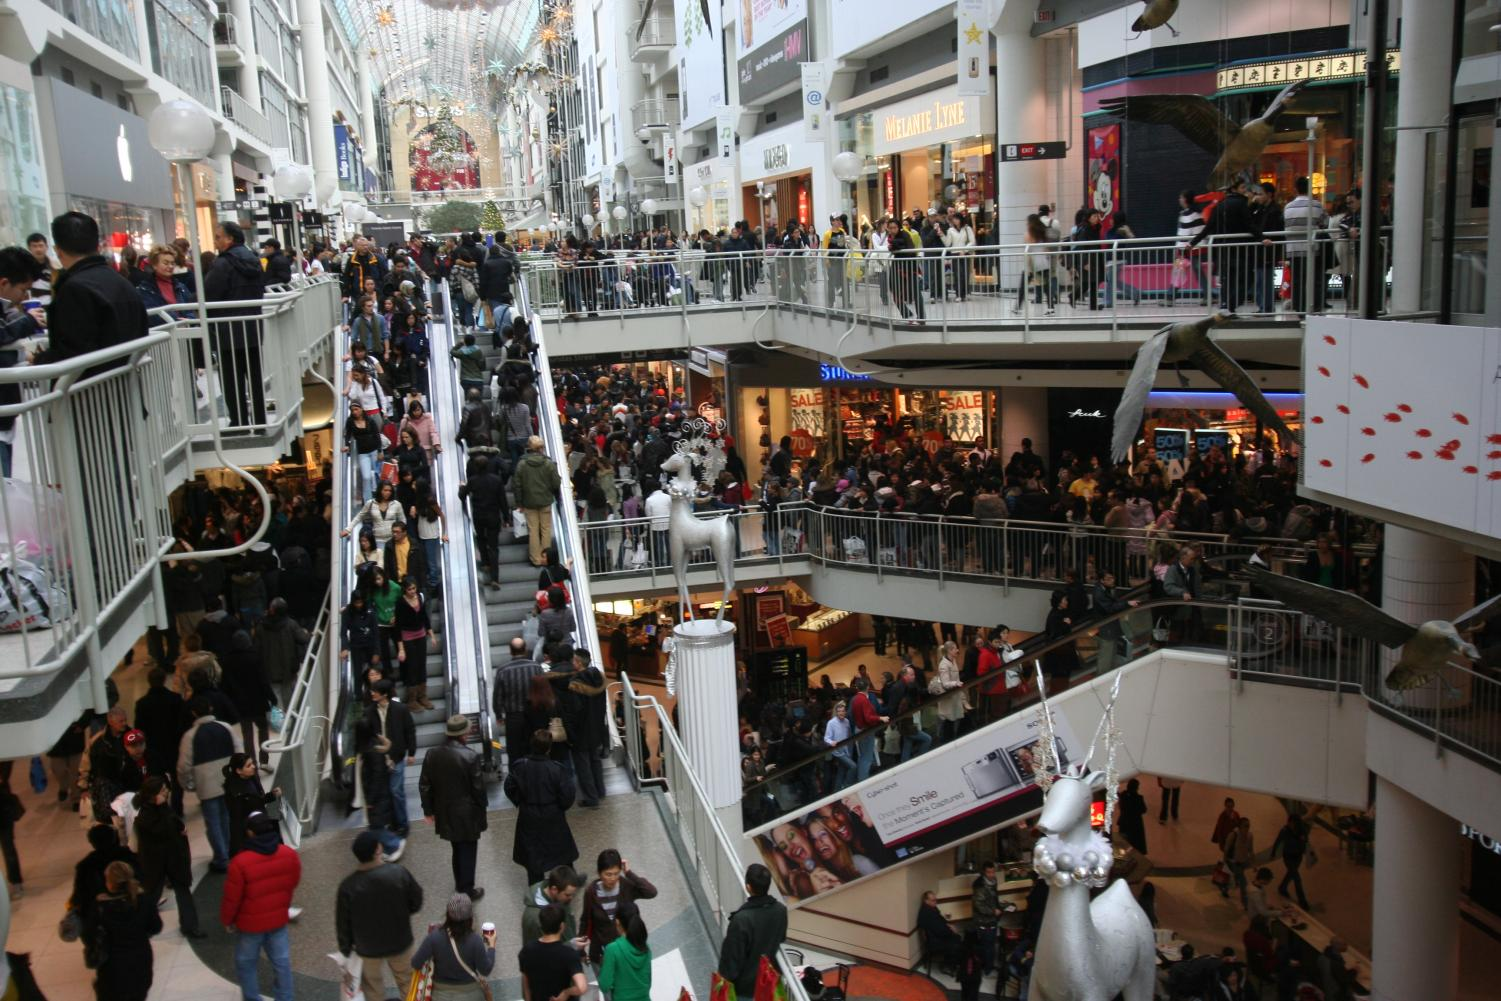 Shoppers rush to purchase goods at the Eaton shopping center in Toronto, Canada.